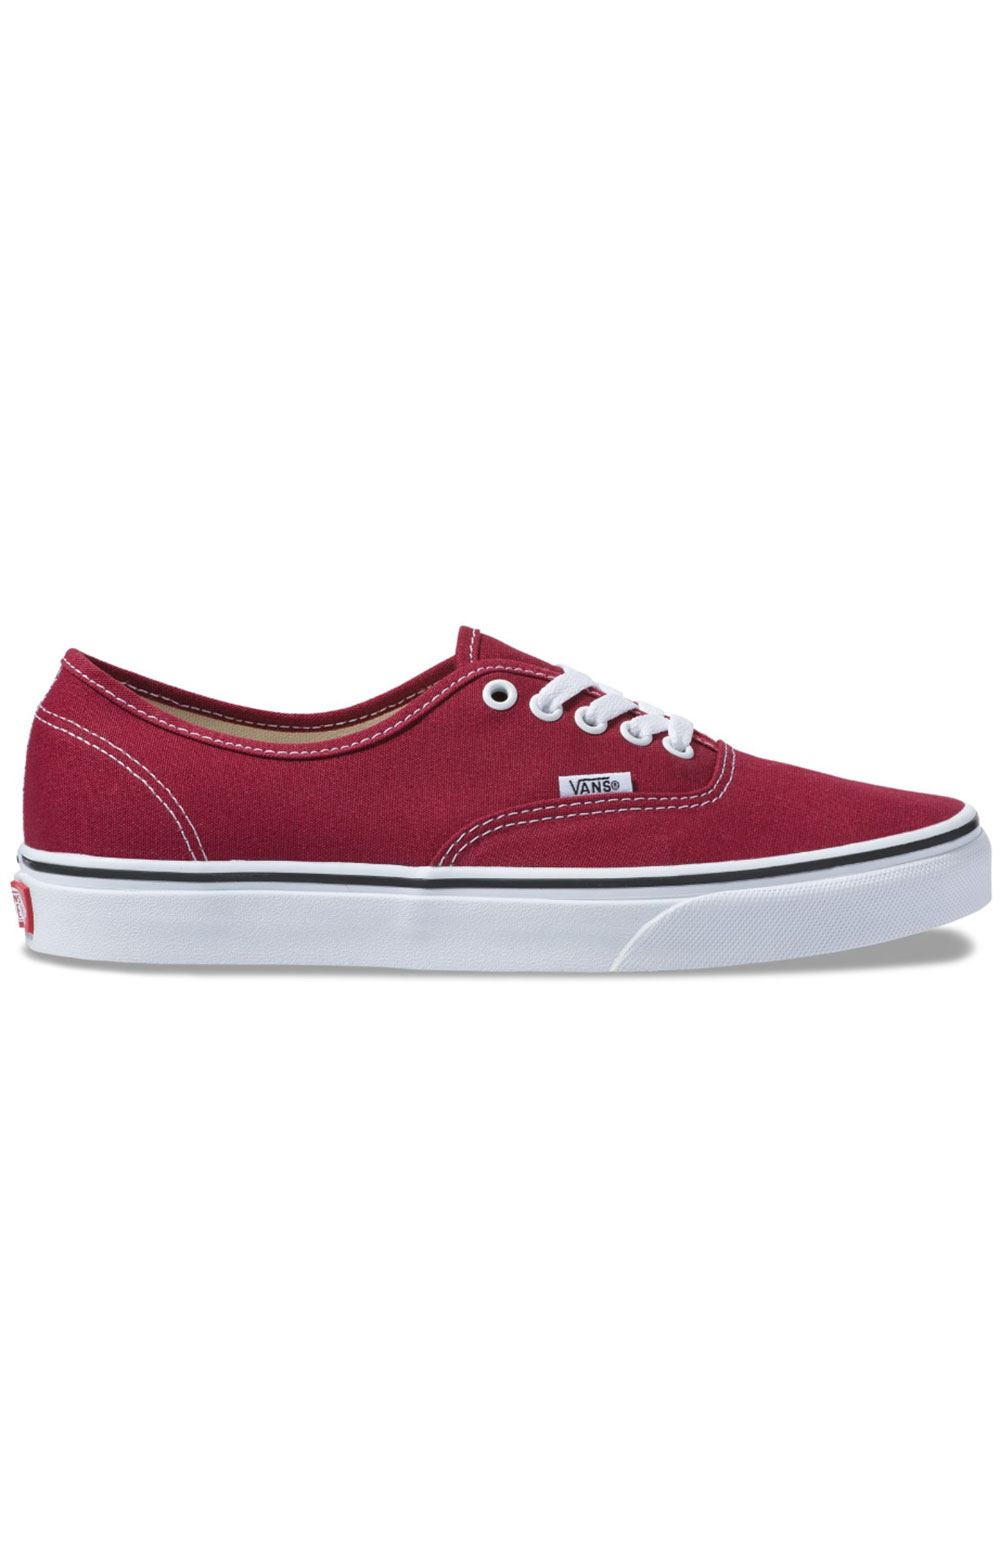 (8EMVG4) Authentic Shoe - Rumba Red